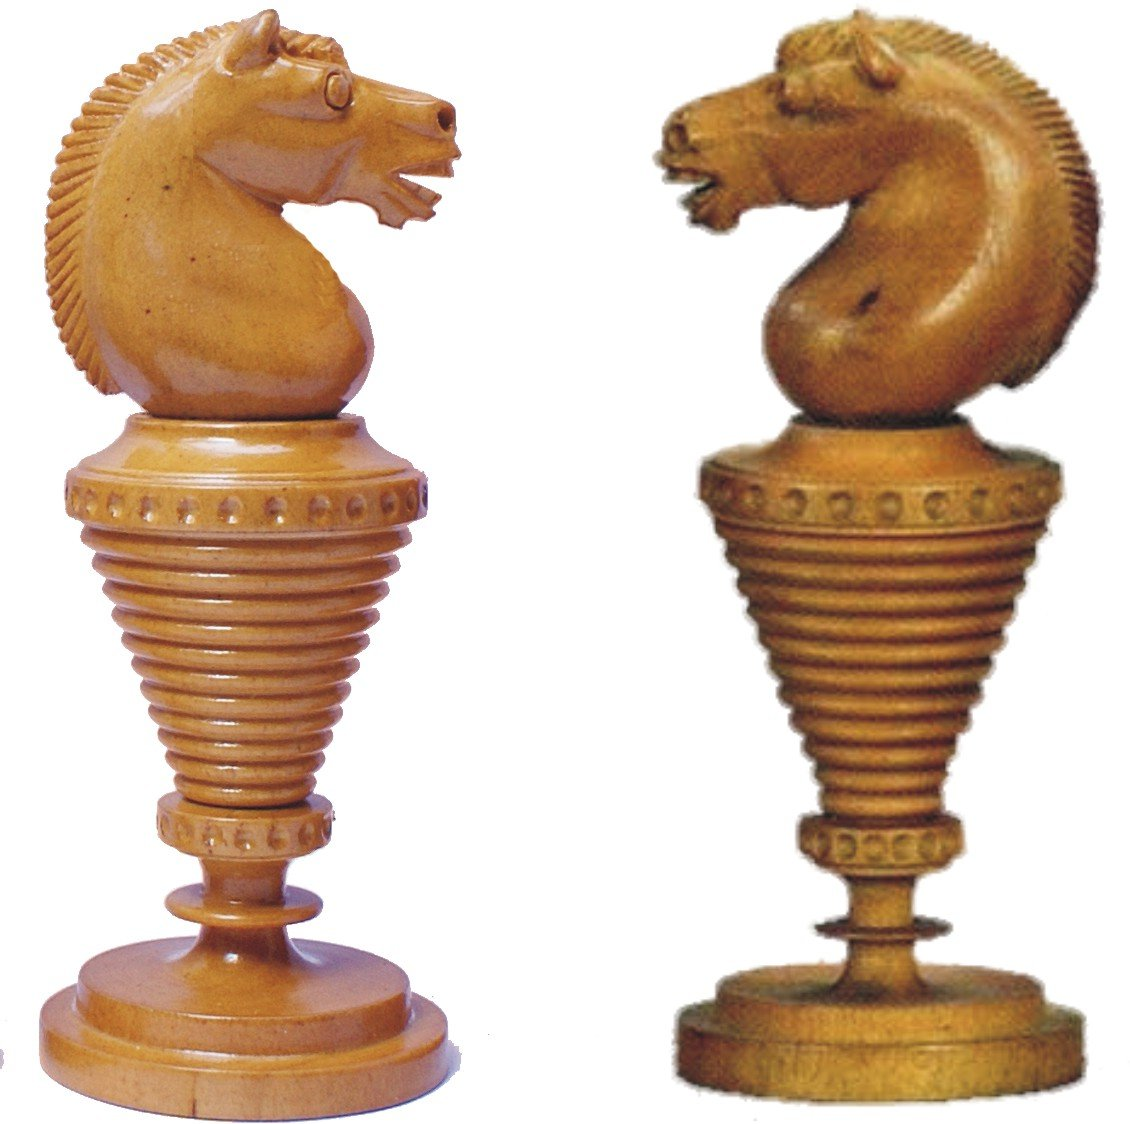 Anglo-Dutch Reproduction Chessmen